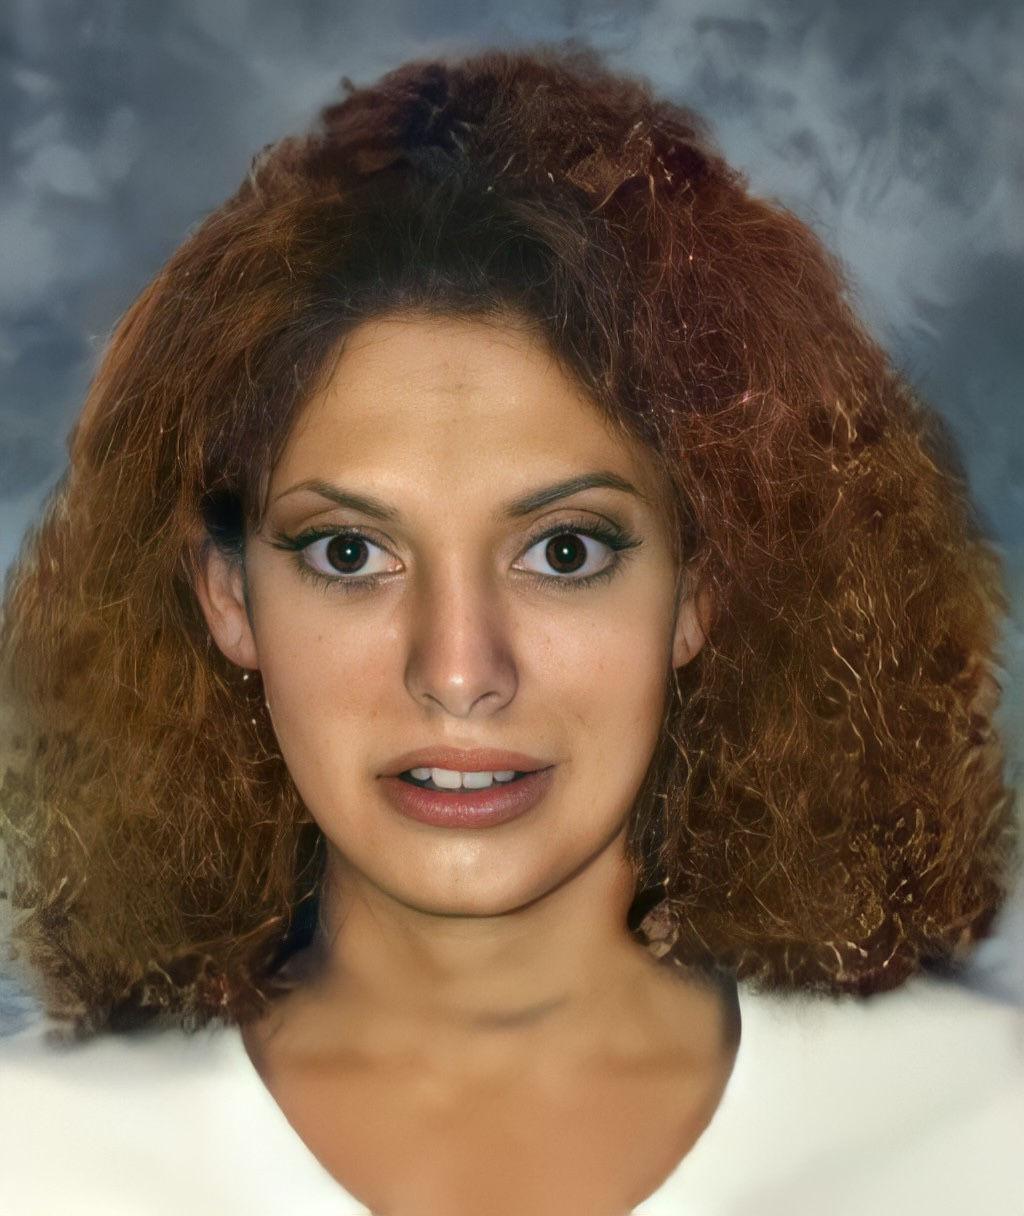 Beaufort County Jane Doe